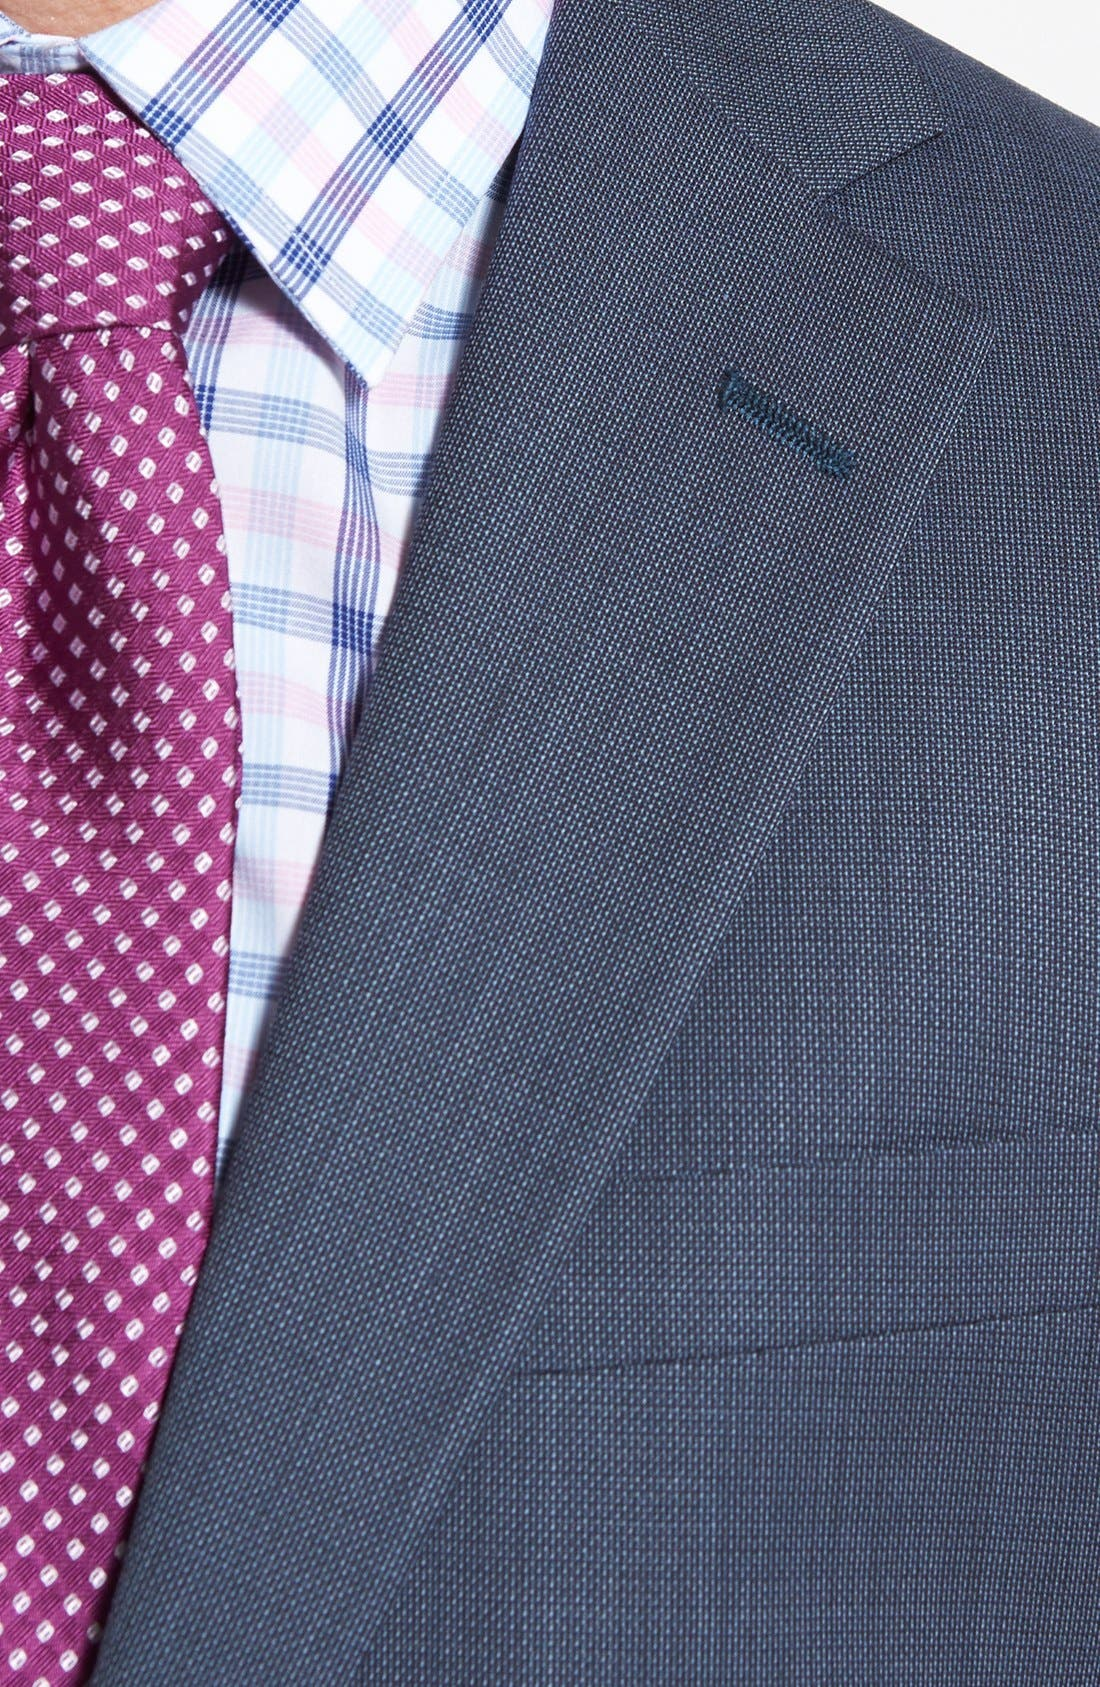 NY 2BTN SV FF CLASSIC FIT SUIT,                             Alternate thumbnail 4, color,                             429